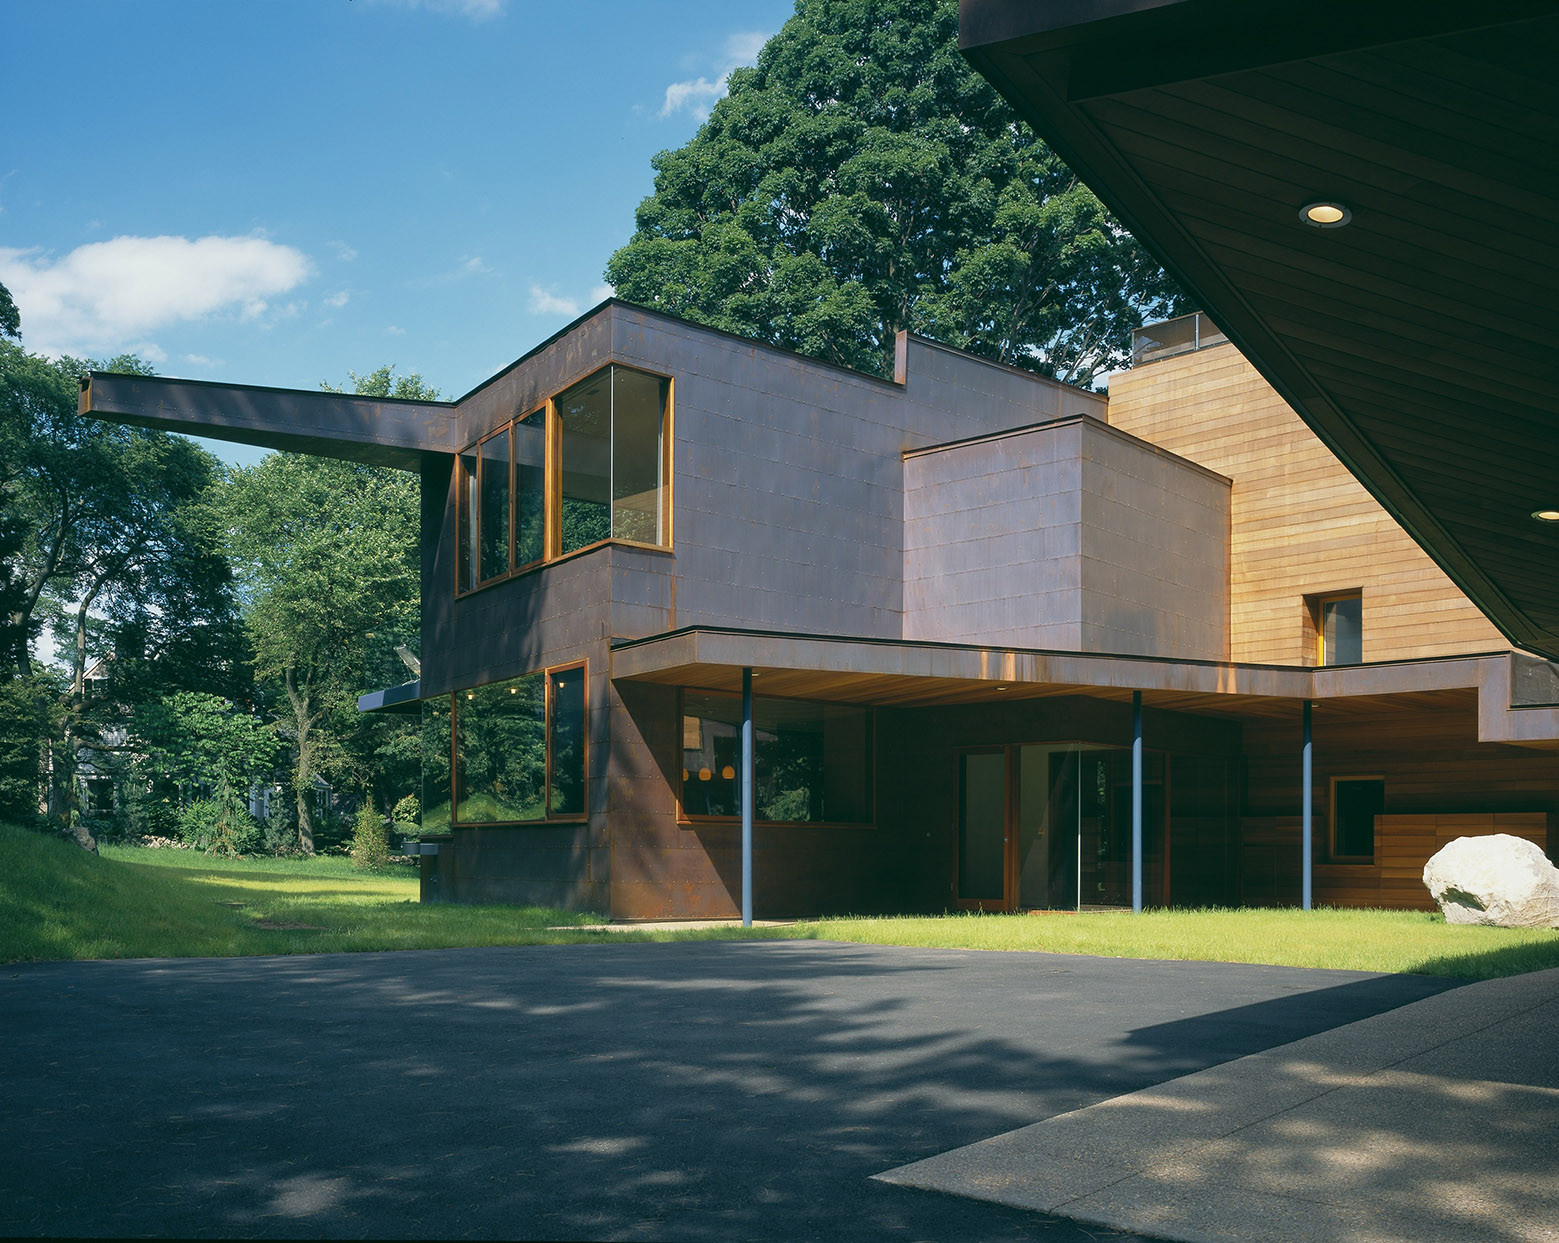 Copper House / Charles Rose Architects, Courtesy of Charles Rose Architects